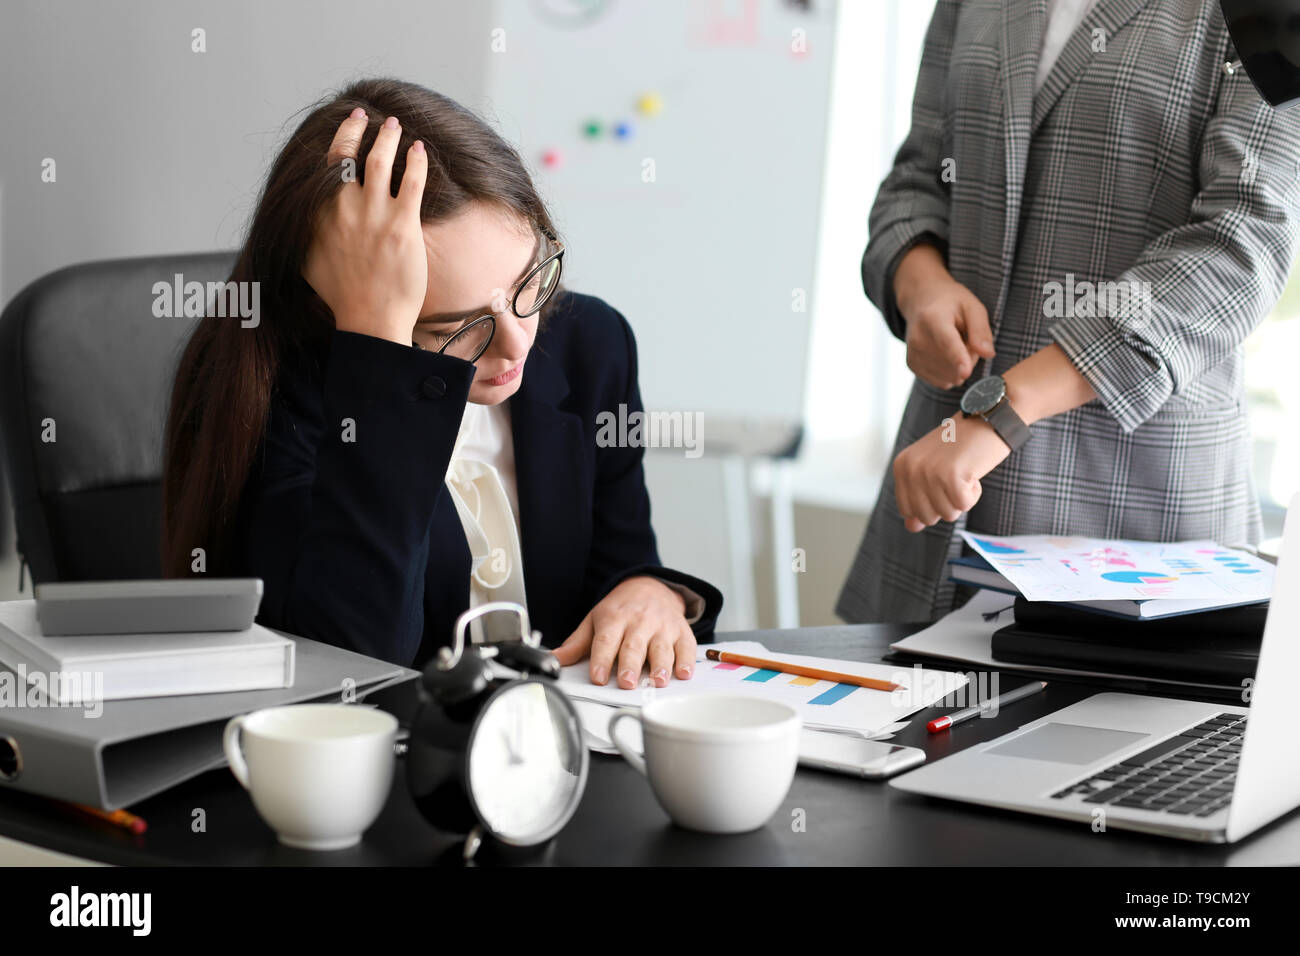 Boss reminding young woman of duration in office - Stock Image